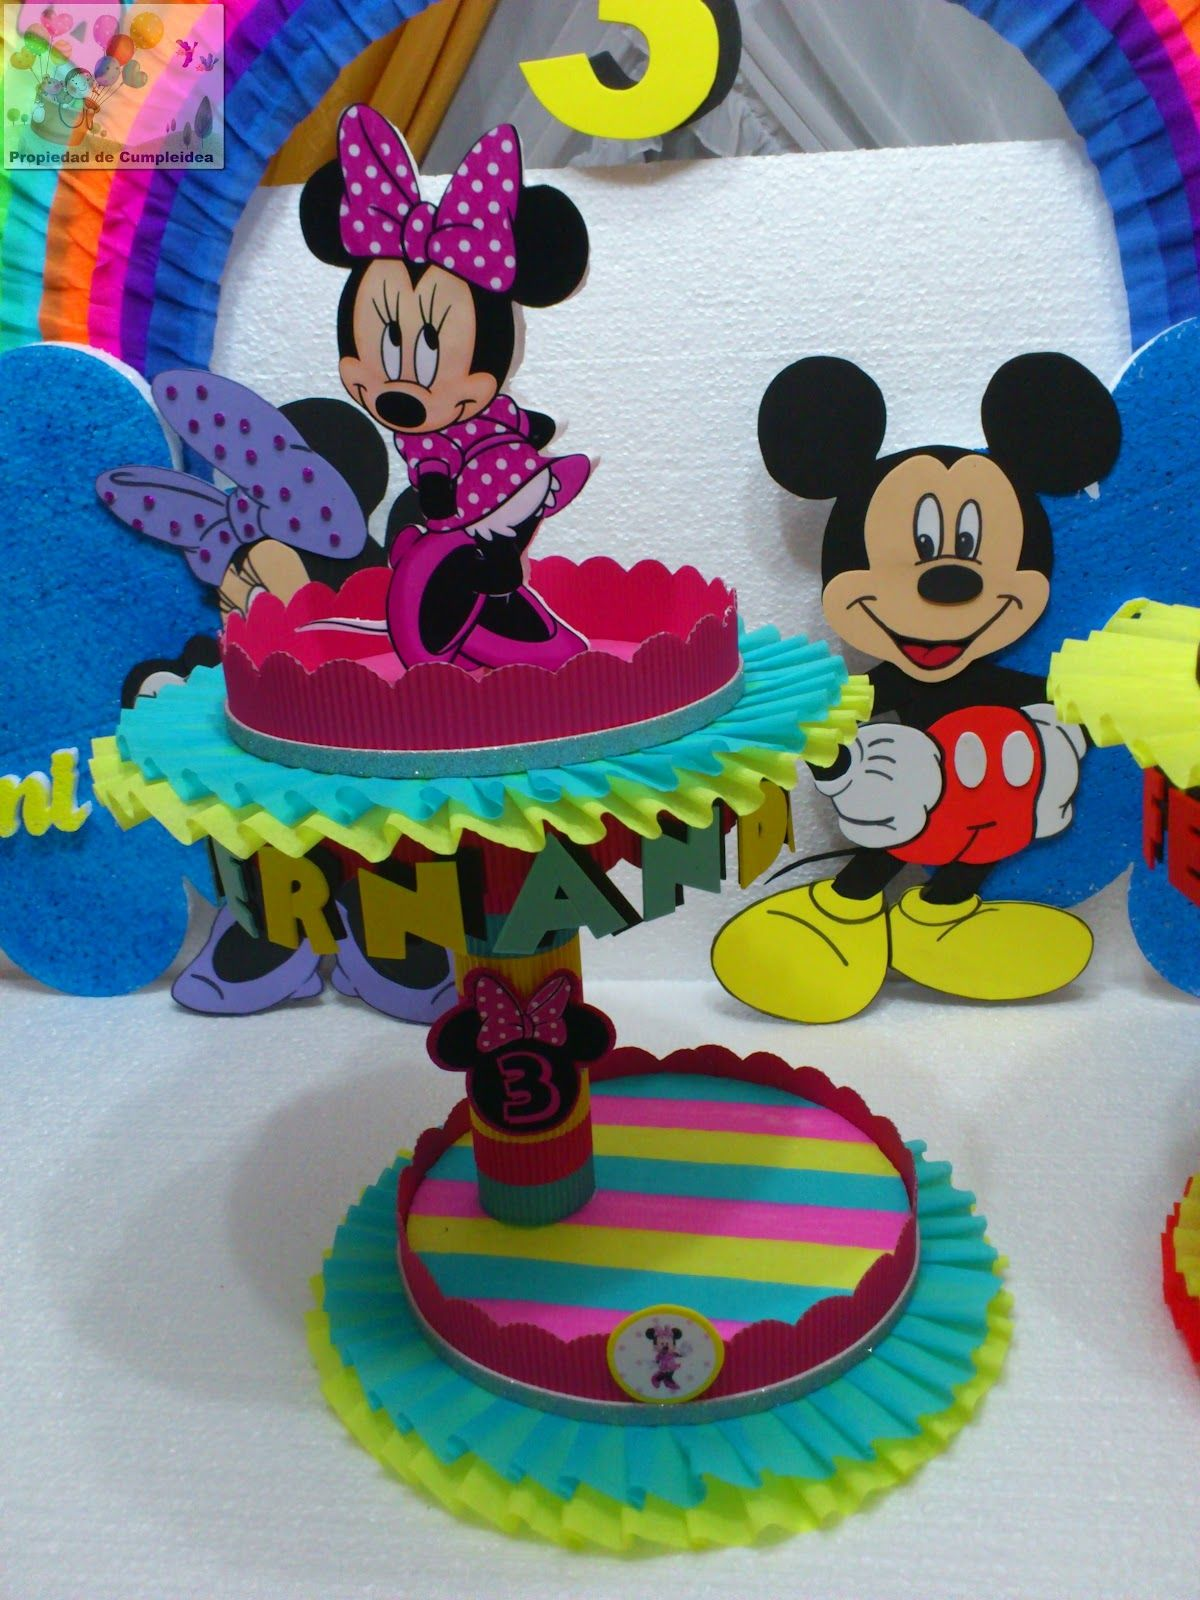 Decoraciones Infantiles De Mickey Decoraciones Infantiles Minnie Y Mickey Mouse